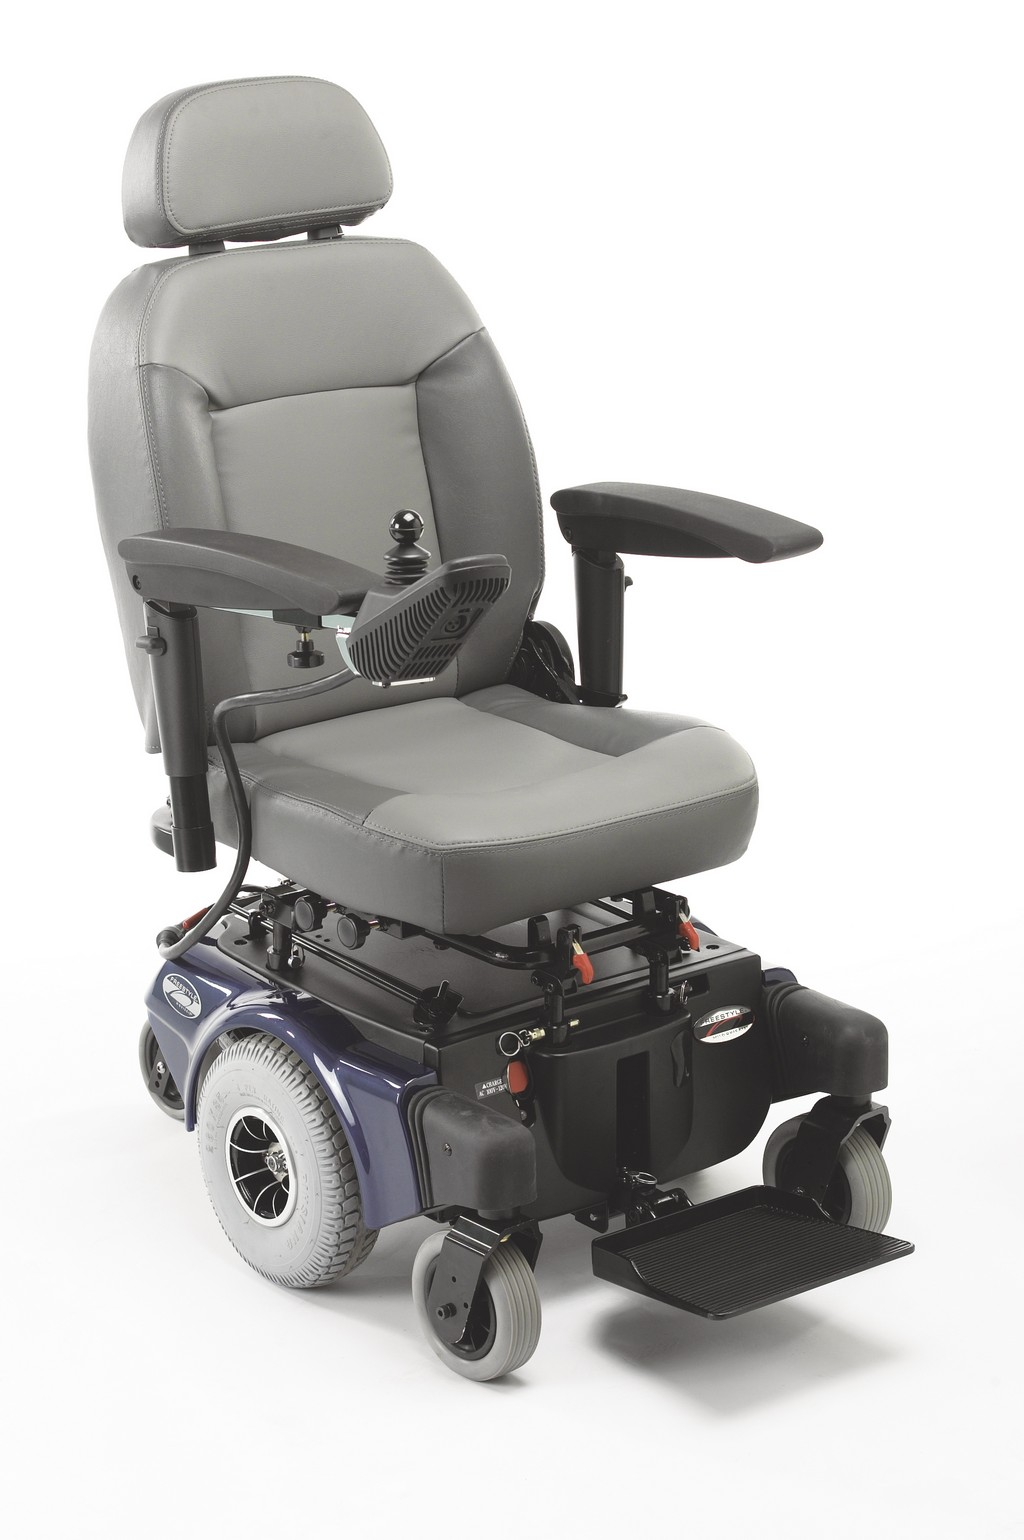 merit power wheelchair parts, pronto m51 power wheel chair, head controled power wheelchair, amigo power wheel chair